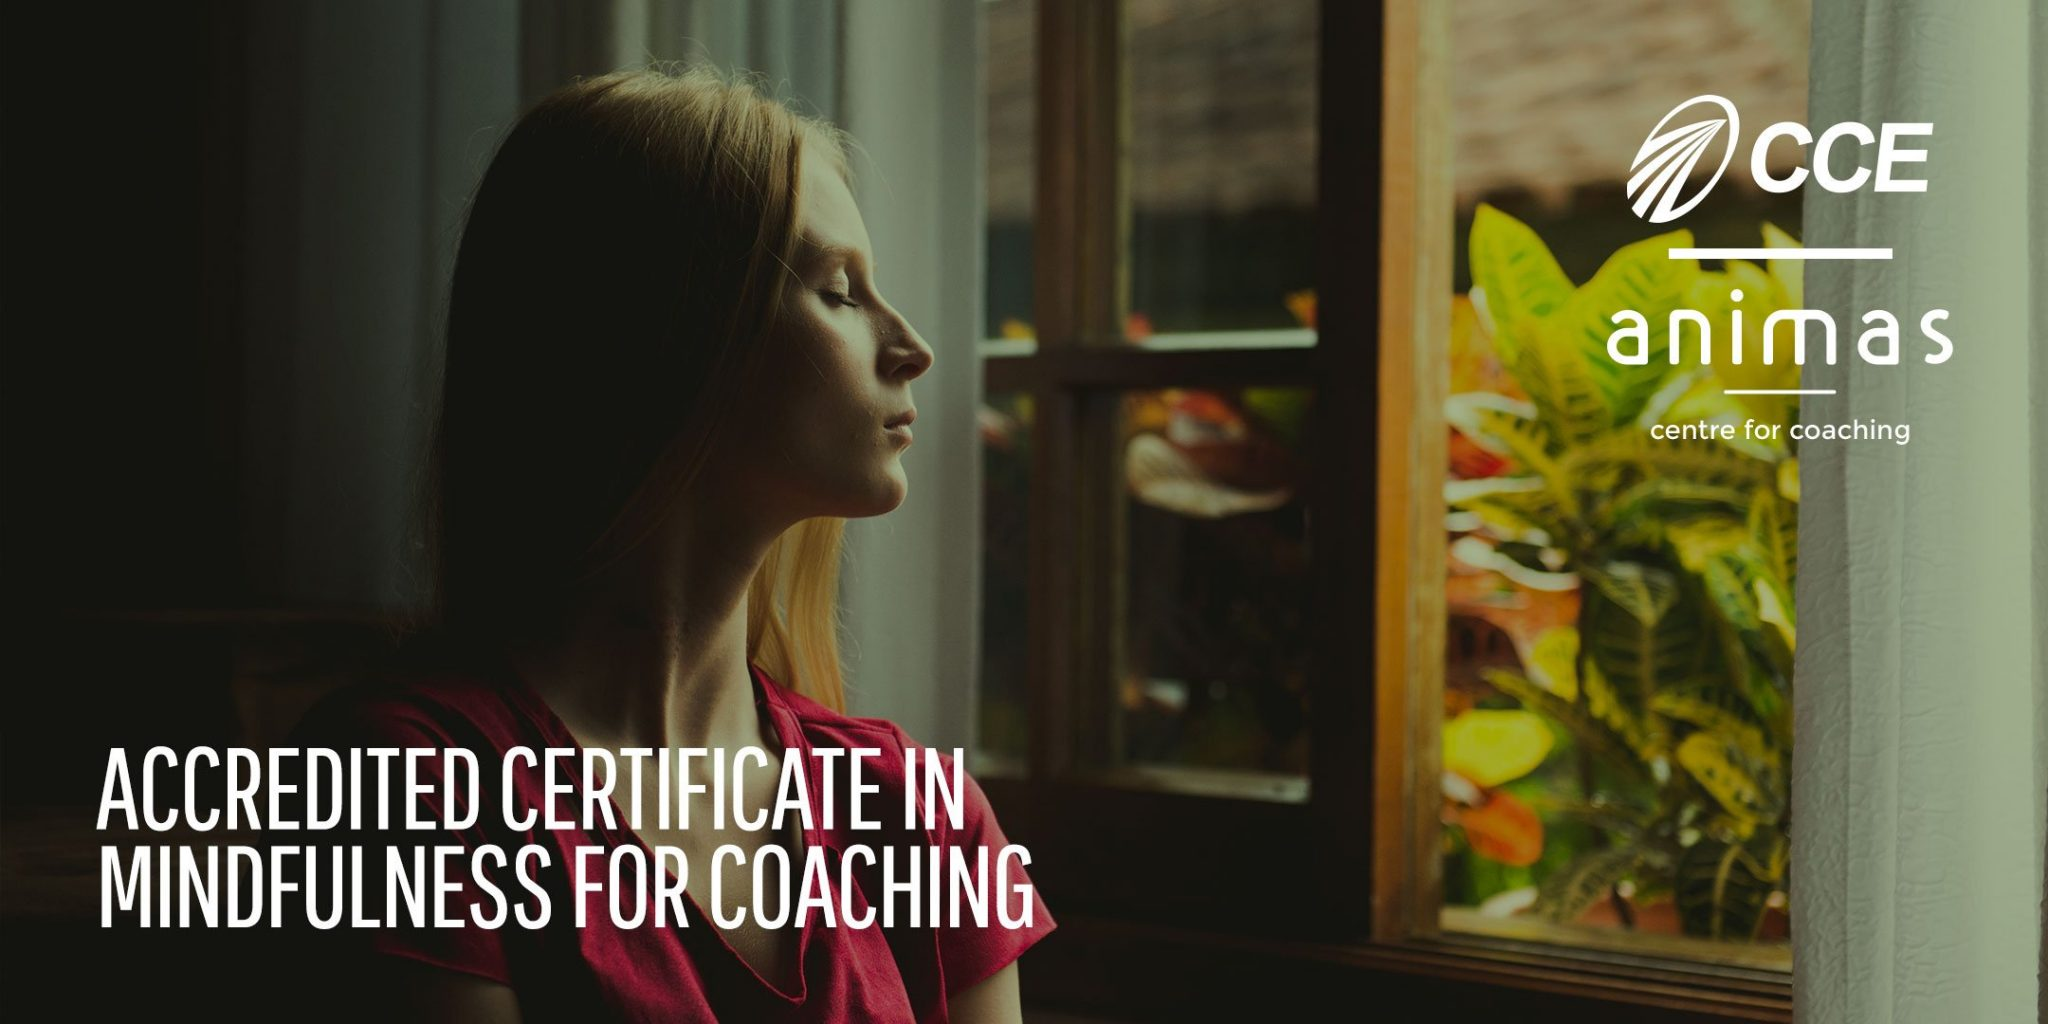 Mindfulness for Coaching